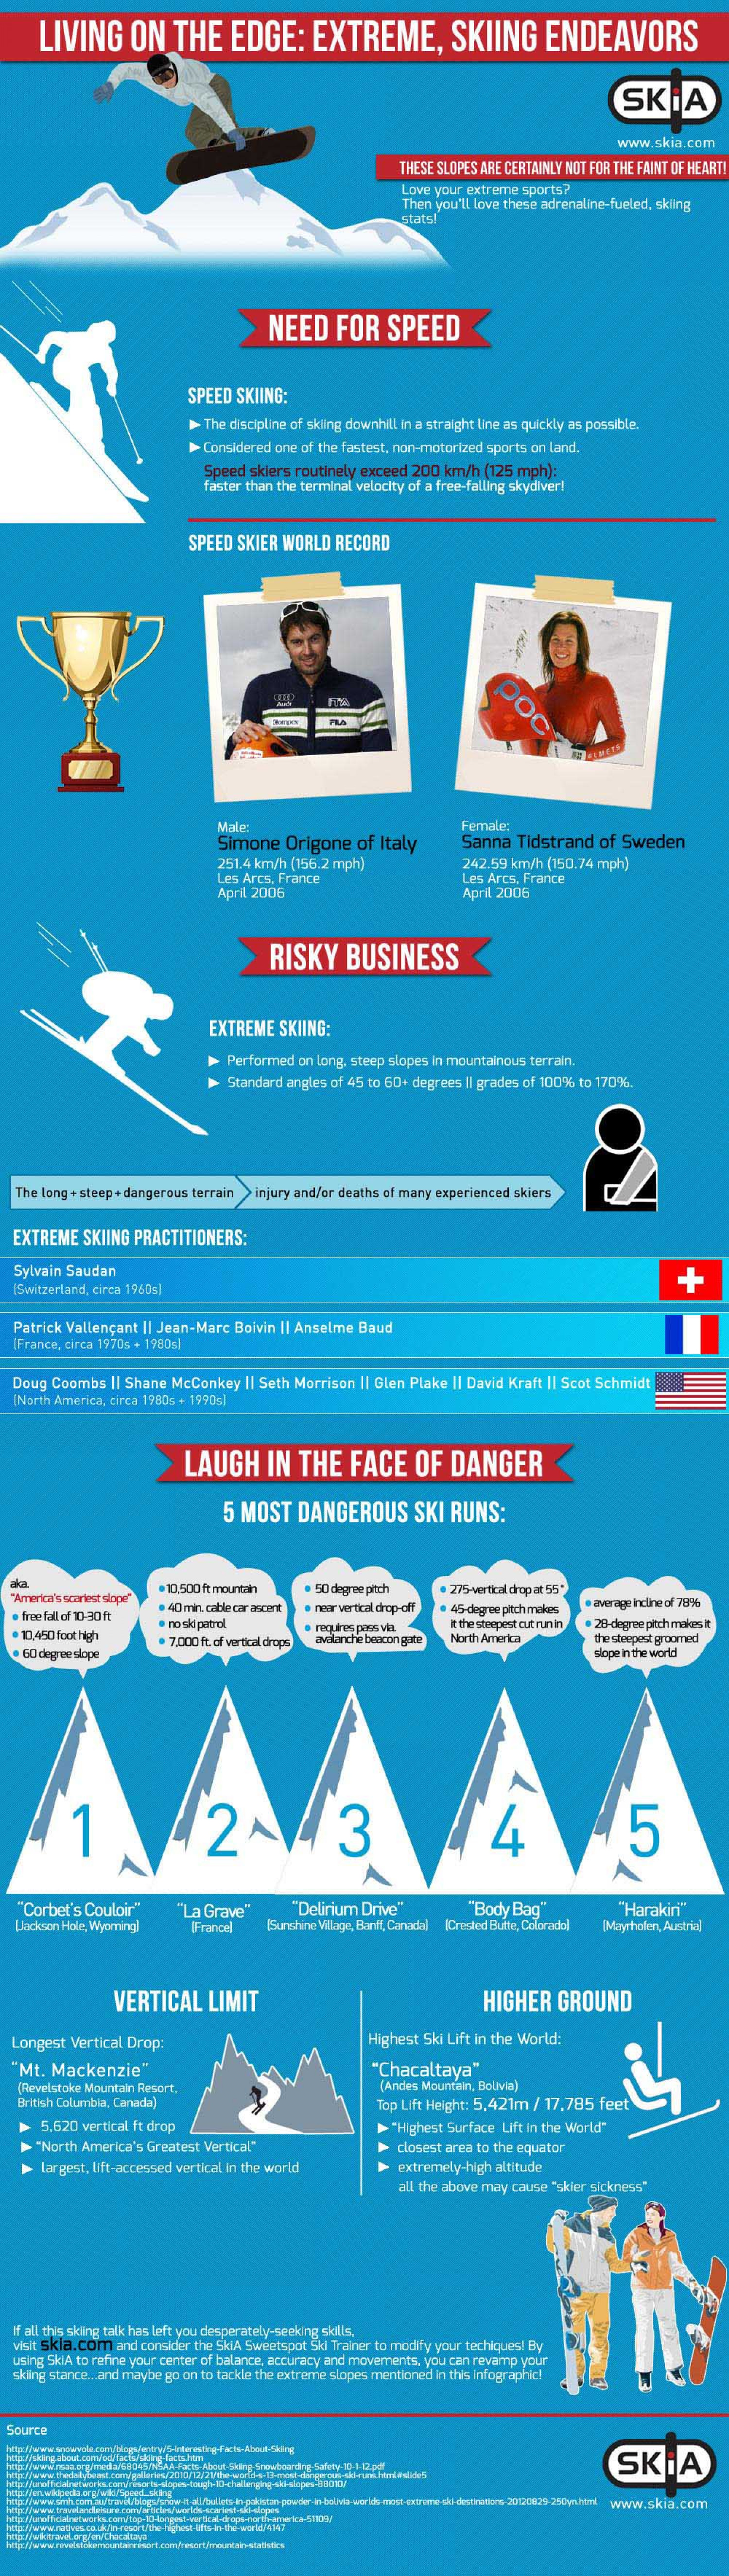 living on the edge: extreme, skiing endeavors Infographic